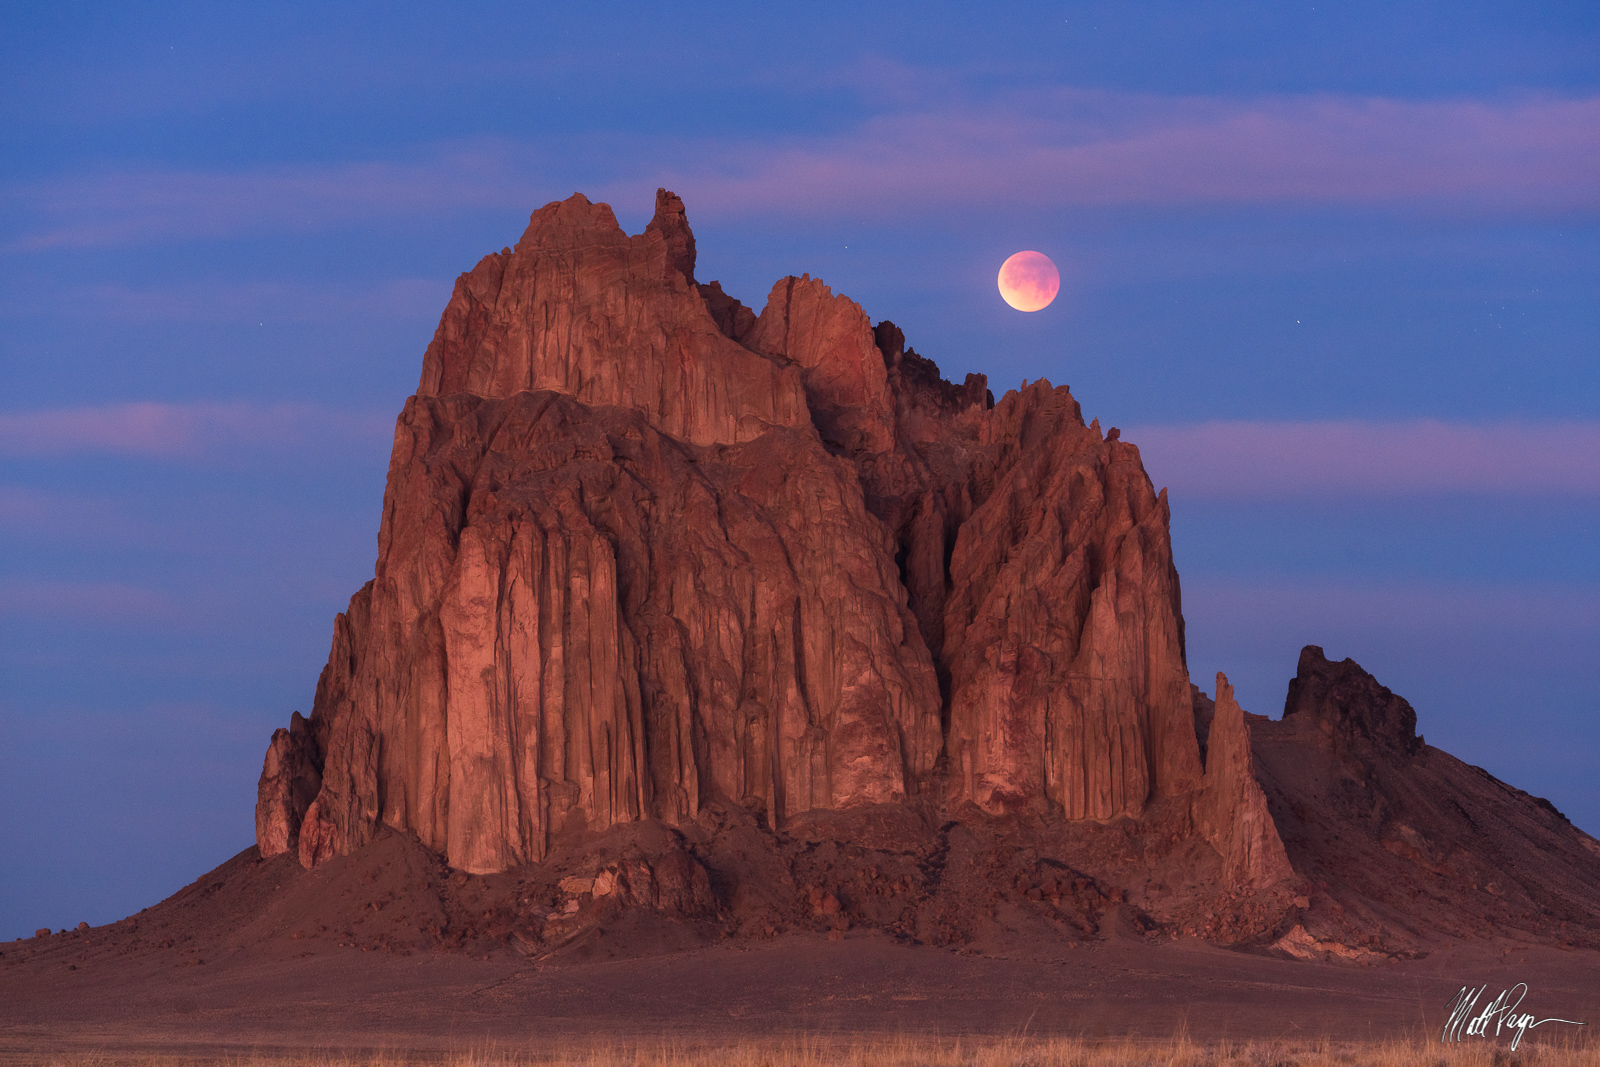 Blood Moon, Landscape, Lunar Eclipse, Moon, New Mexico, Rock Formation, Shiprock, Navajo land, desert, photo